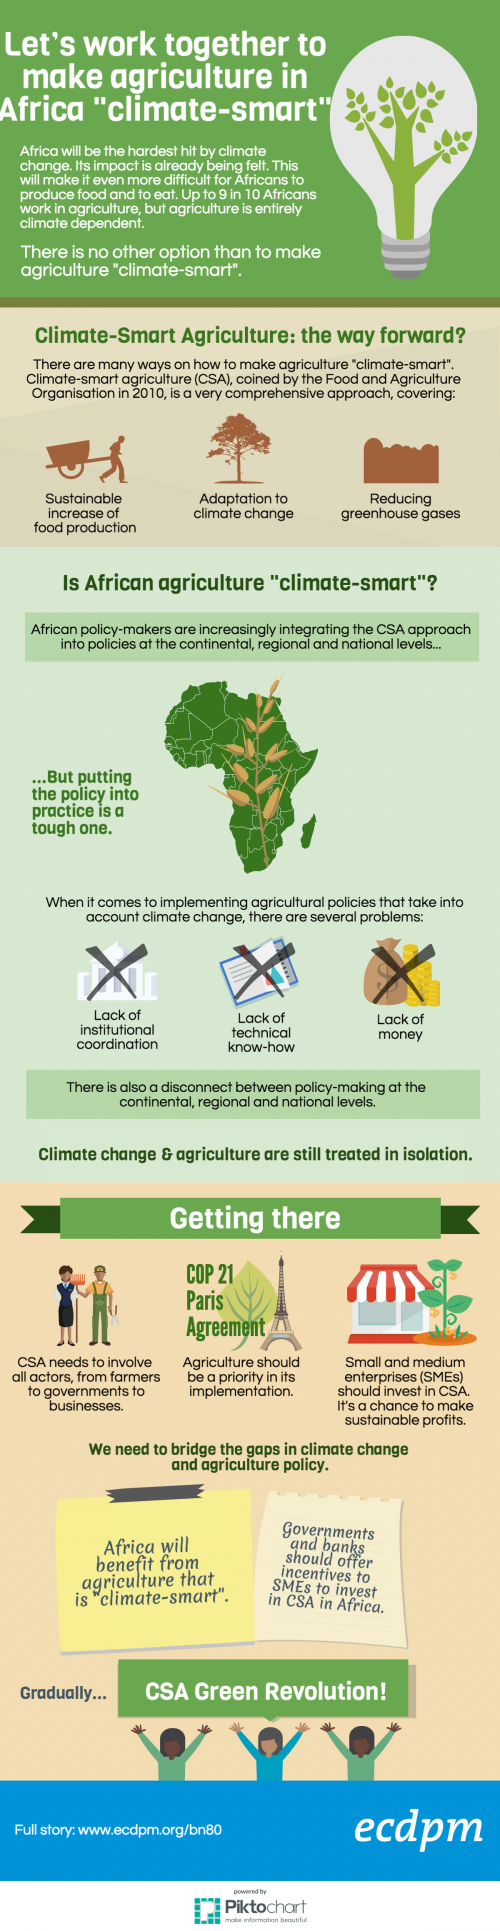 Climate-Smart-Agriculture-Africa-Infographic-Small-ECDPM-Updated2